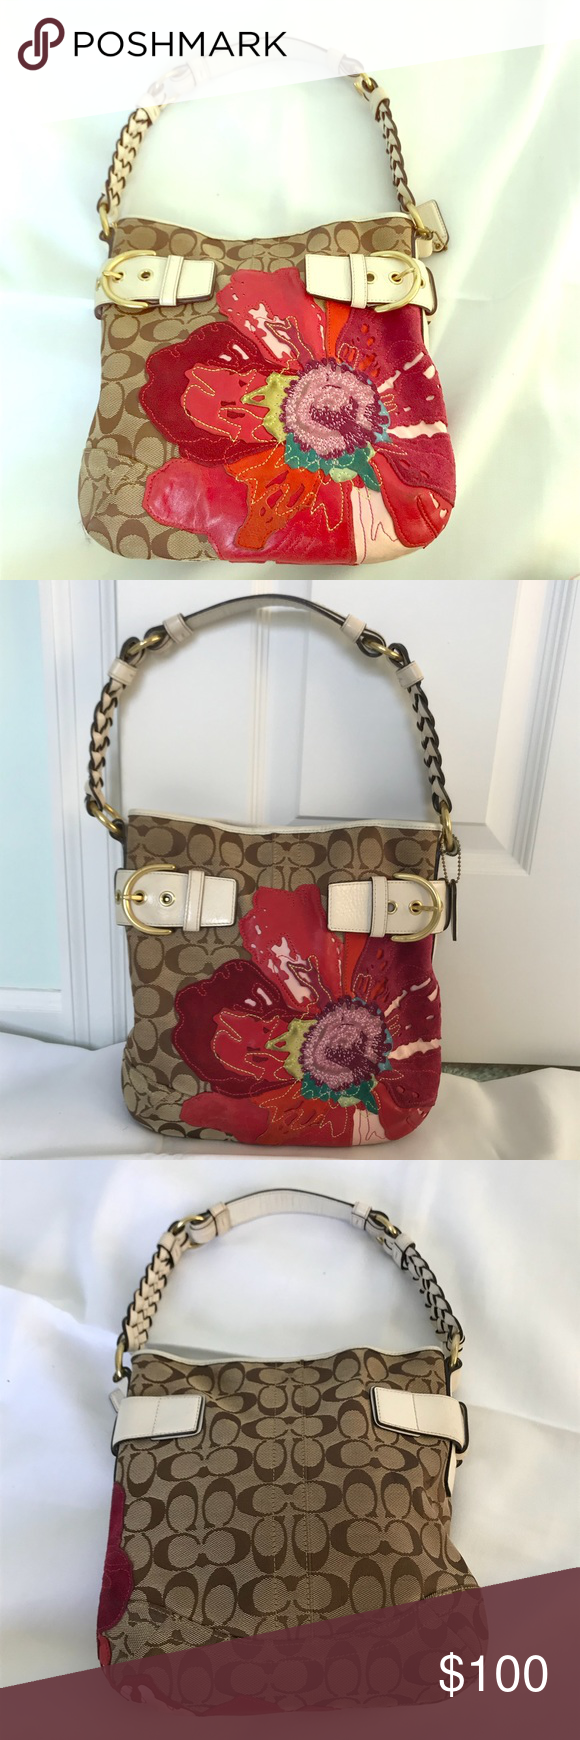 Coach poppy flower purse images fresh lotus flowers coach poppy flower handbag coach poppy braided leather and red purple mightylinksfo